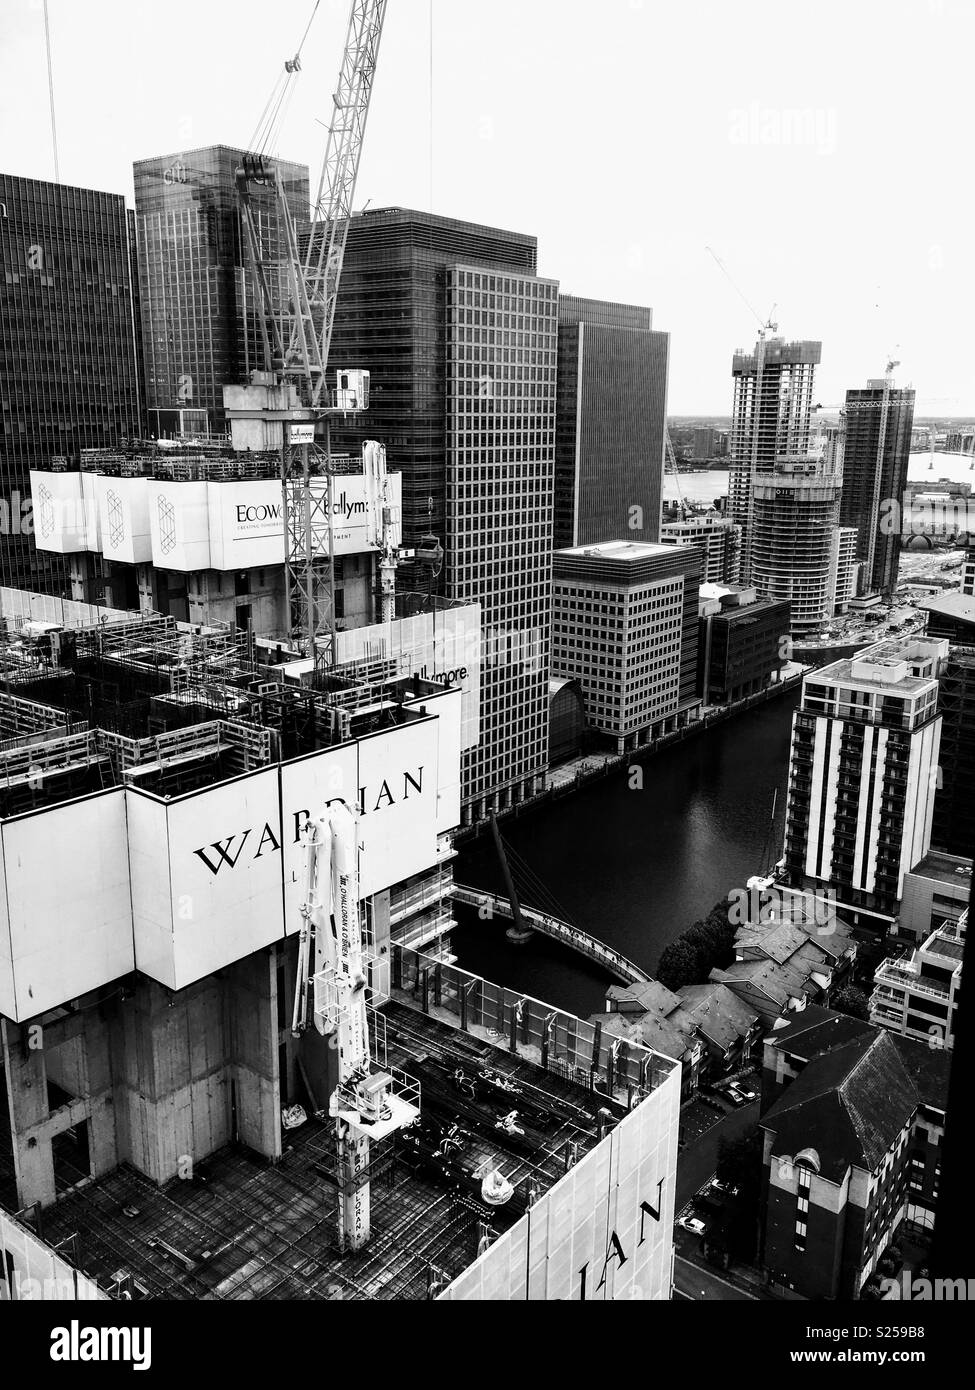 Buildings Being Constructed at Canary Wharf in London - Stock Image